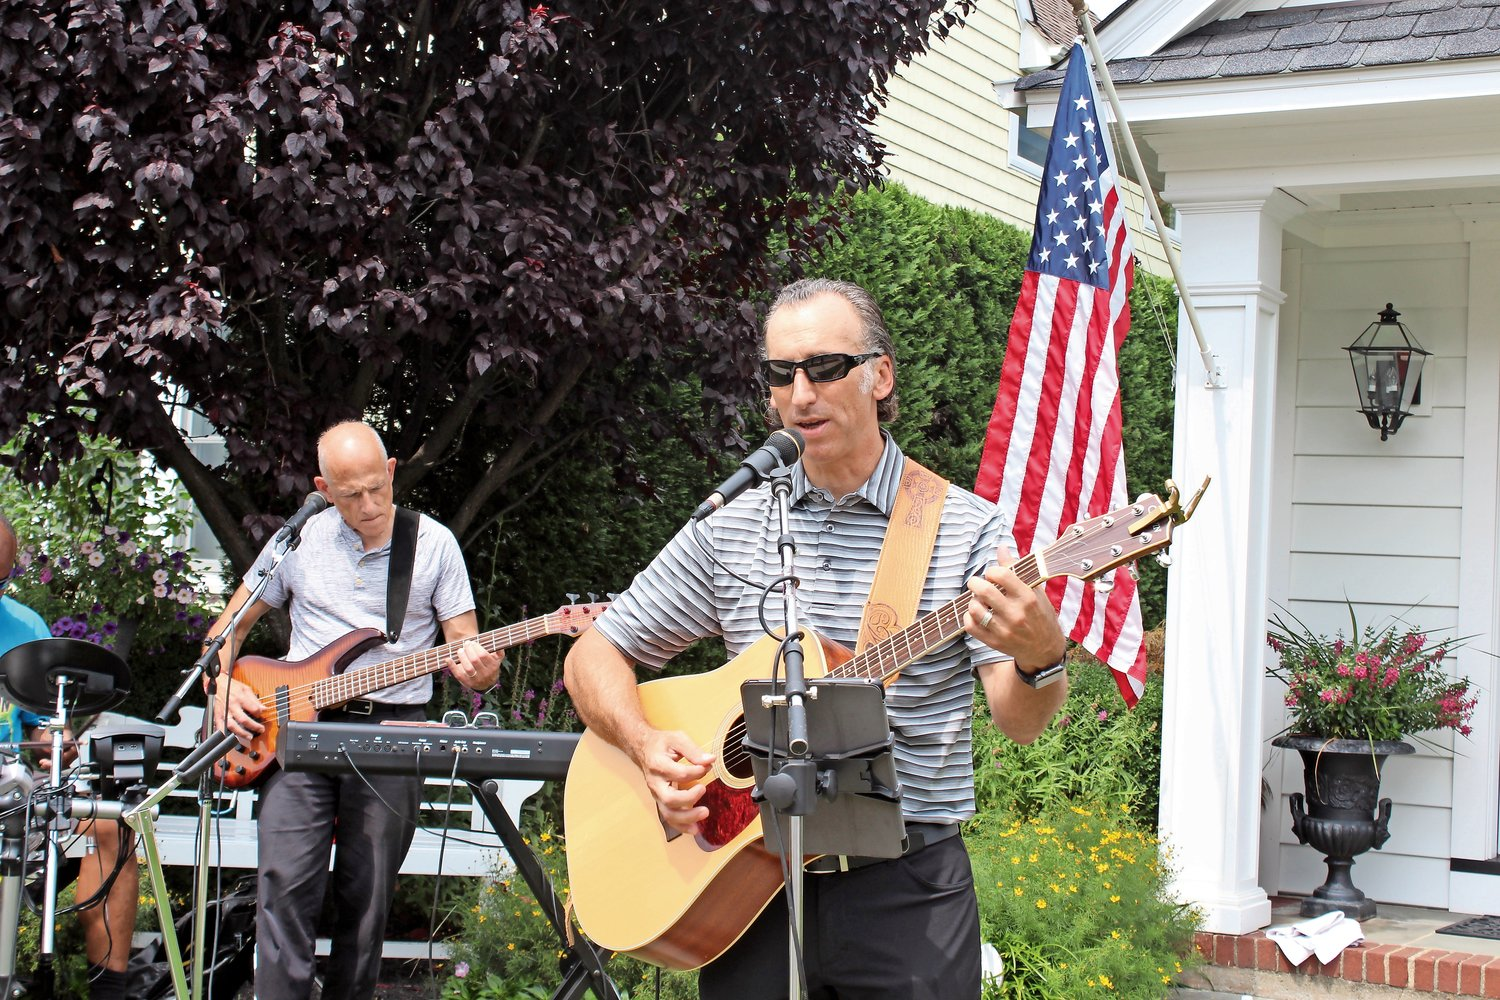 Brett Crompton, senior pastor at Church of the Intercessor, right, rehearsed with Joe Ciccarello, the Malverne church's music director in front of Bill and Lisa Wahlig's home on Wallace Street in the village.